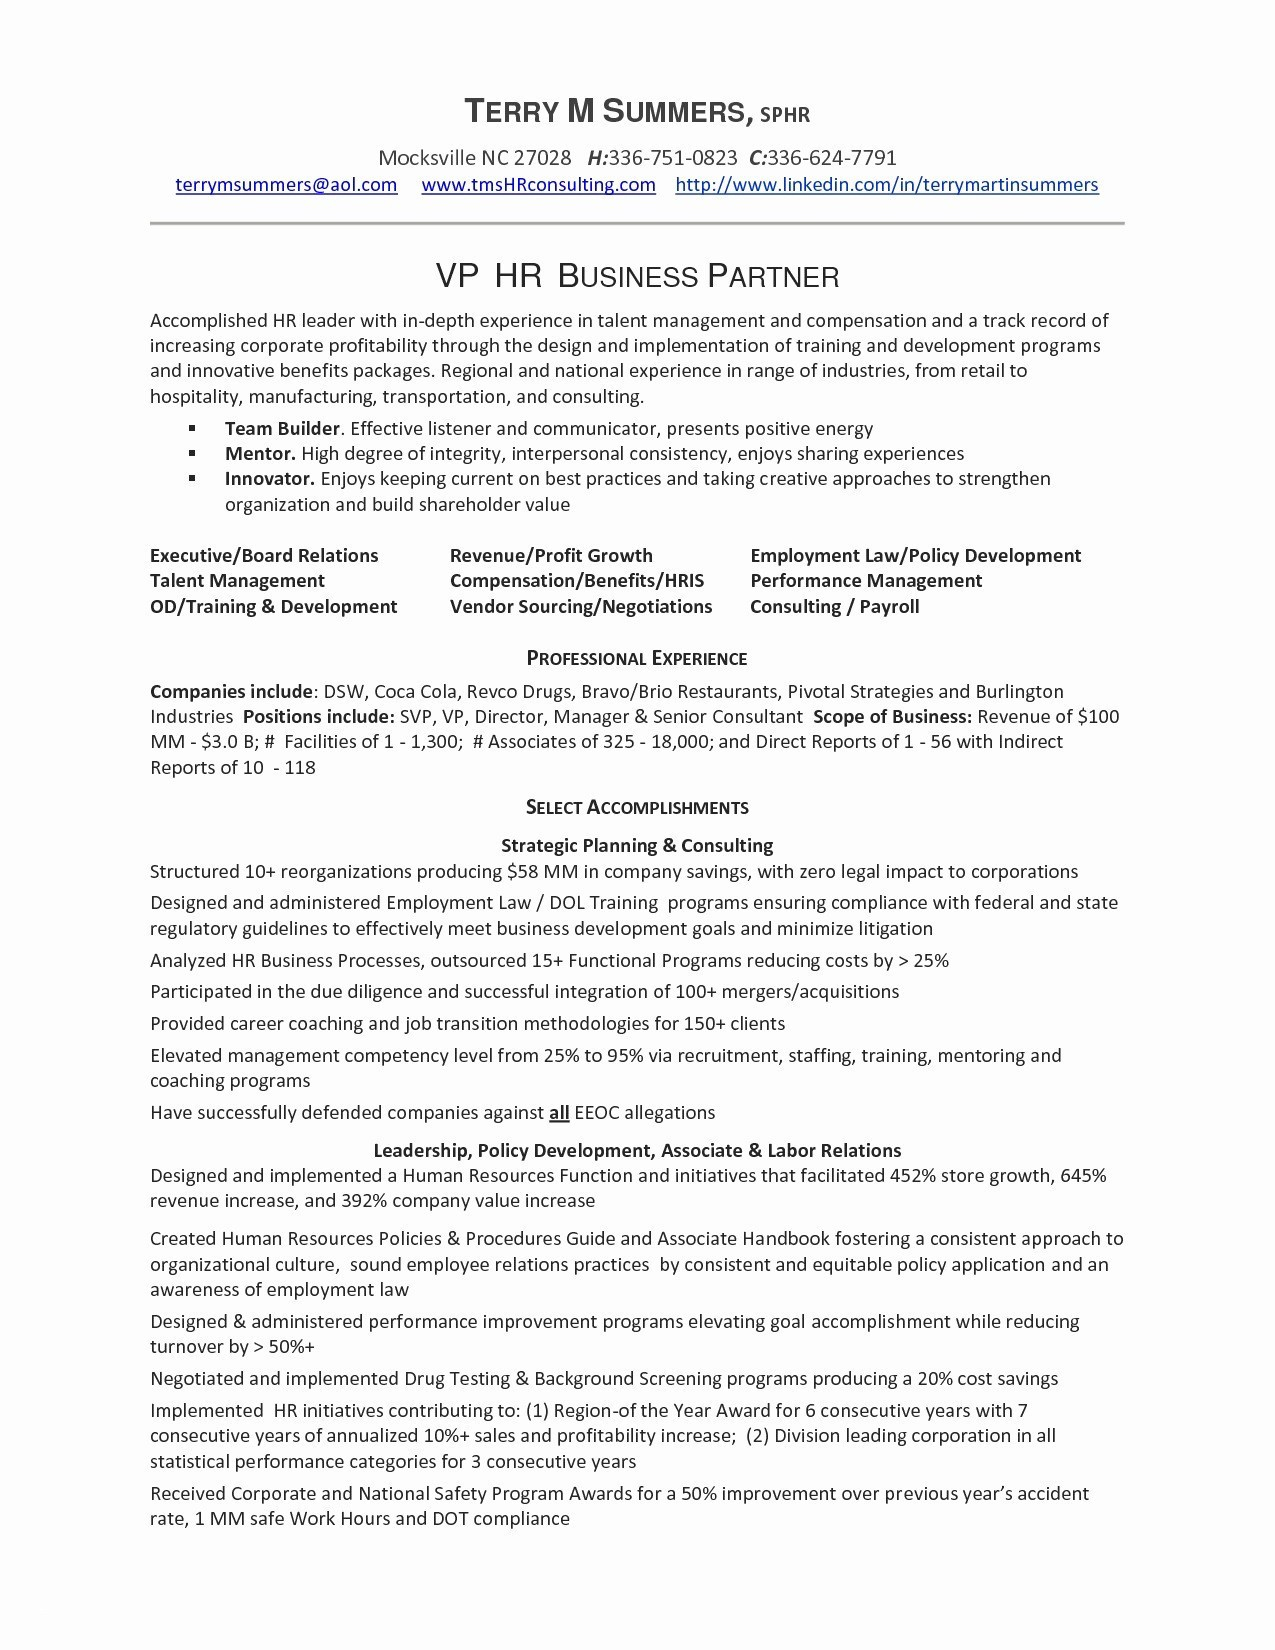 Military Experience On Resume Example - Army to Civilian Resume Examples Valid How to Put Military